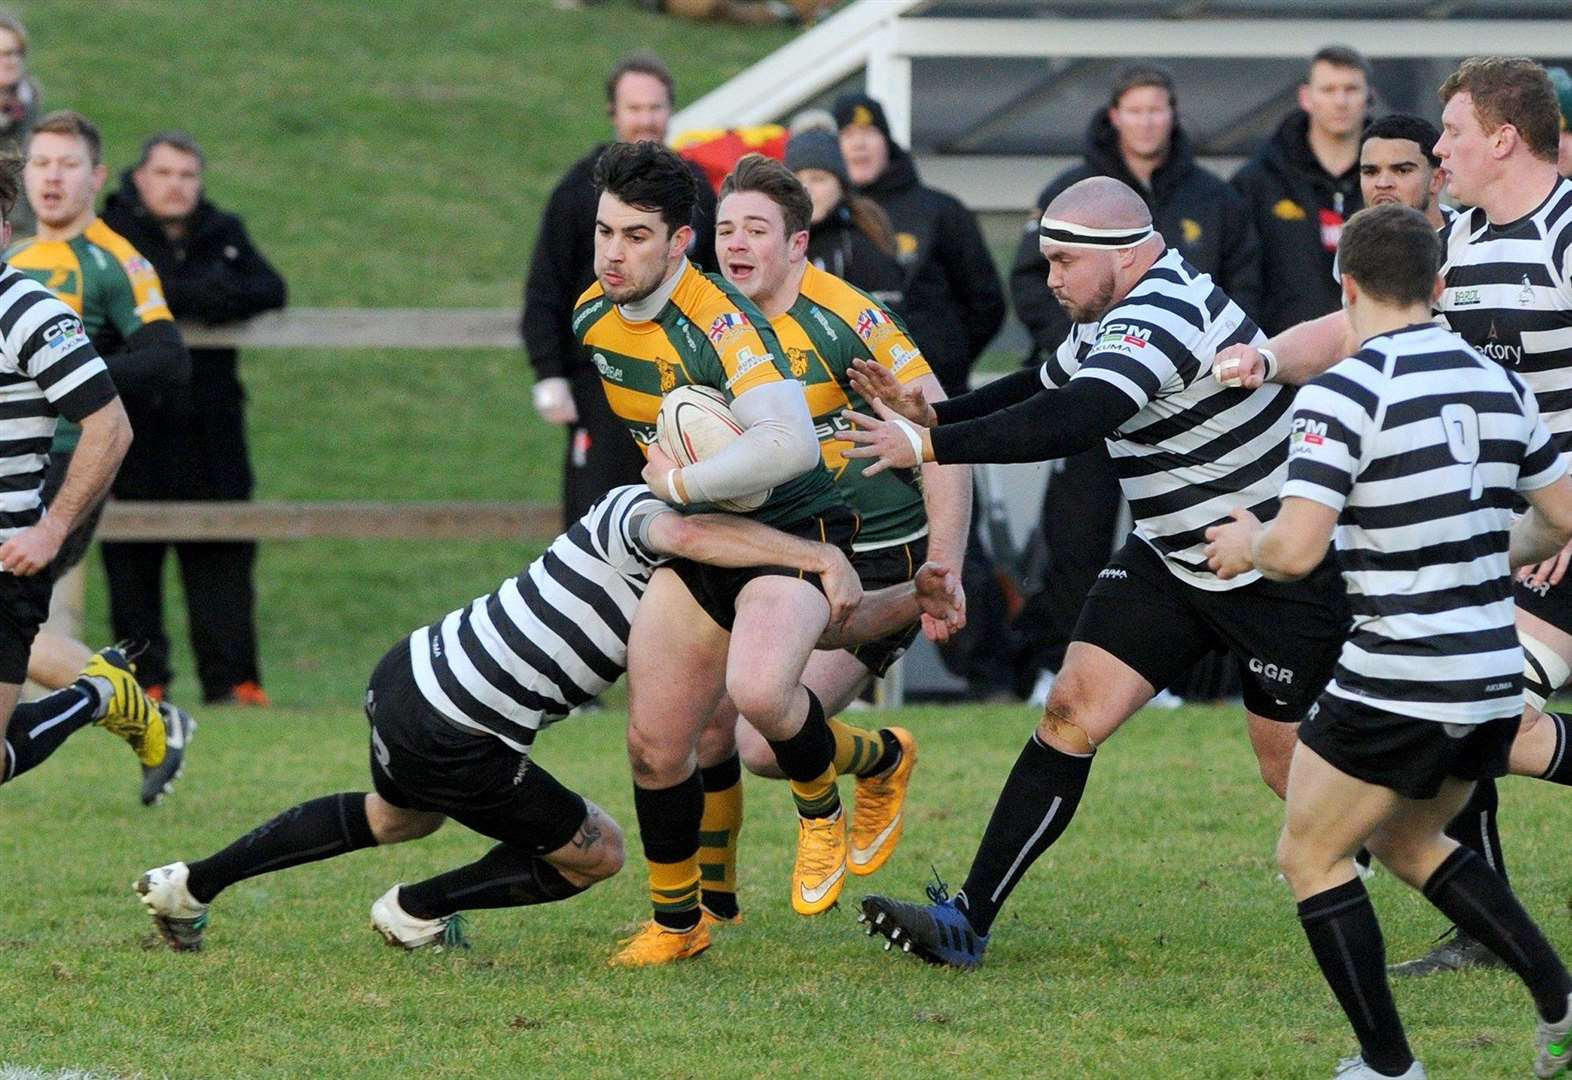 Bury St Edmunds rugby boss unconcerned to lose key scorers as new blood arrives